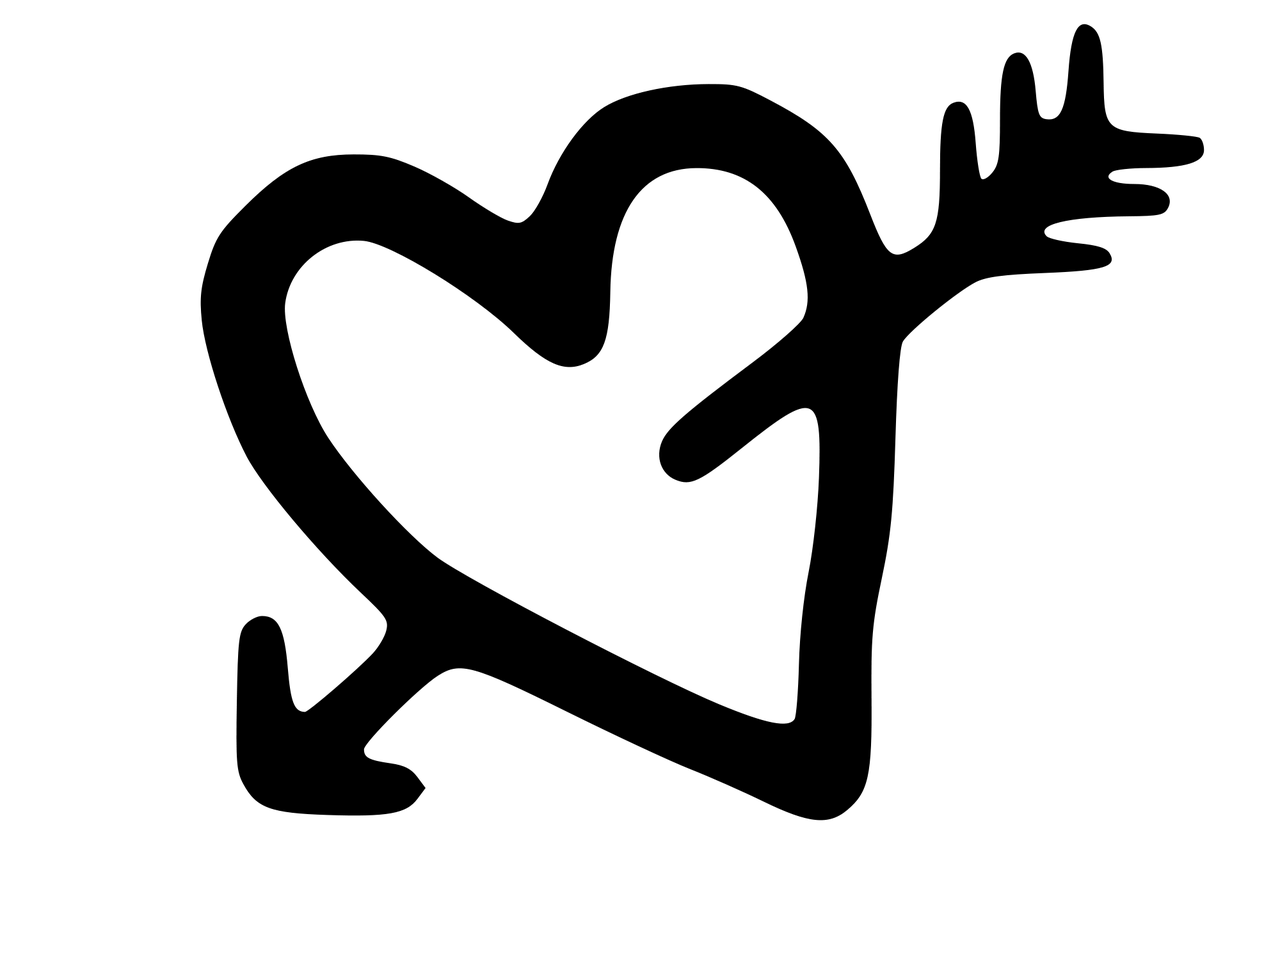 Drawn heart outline png. And arrow drawing transparent